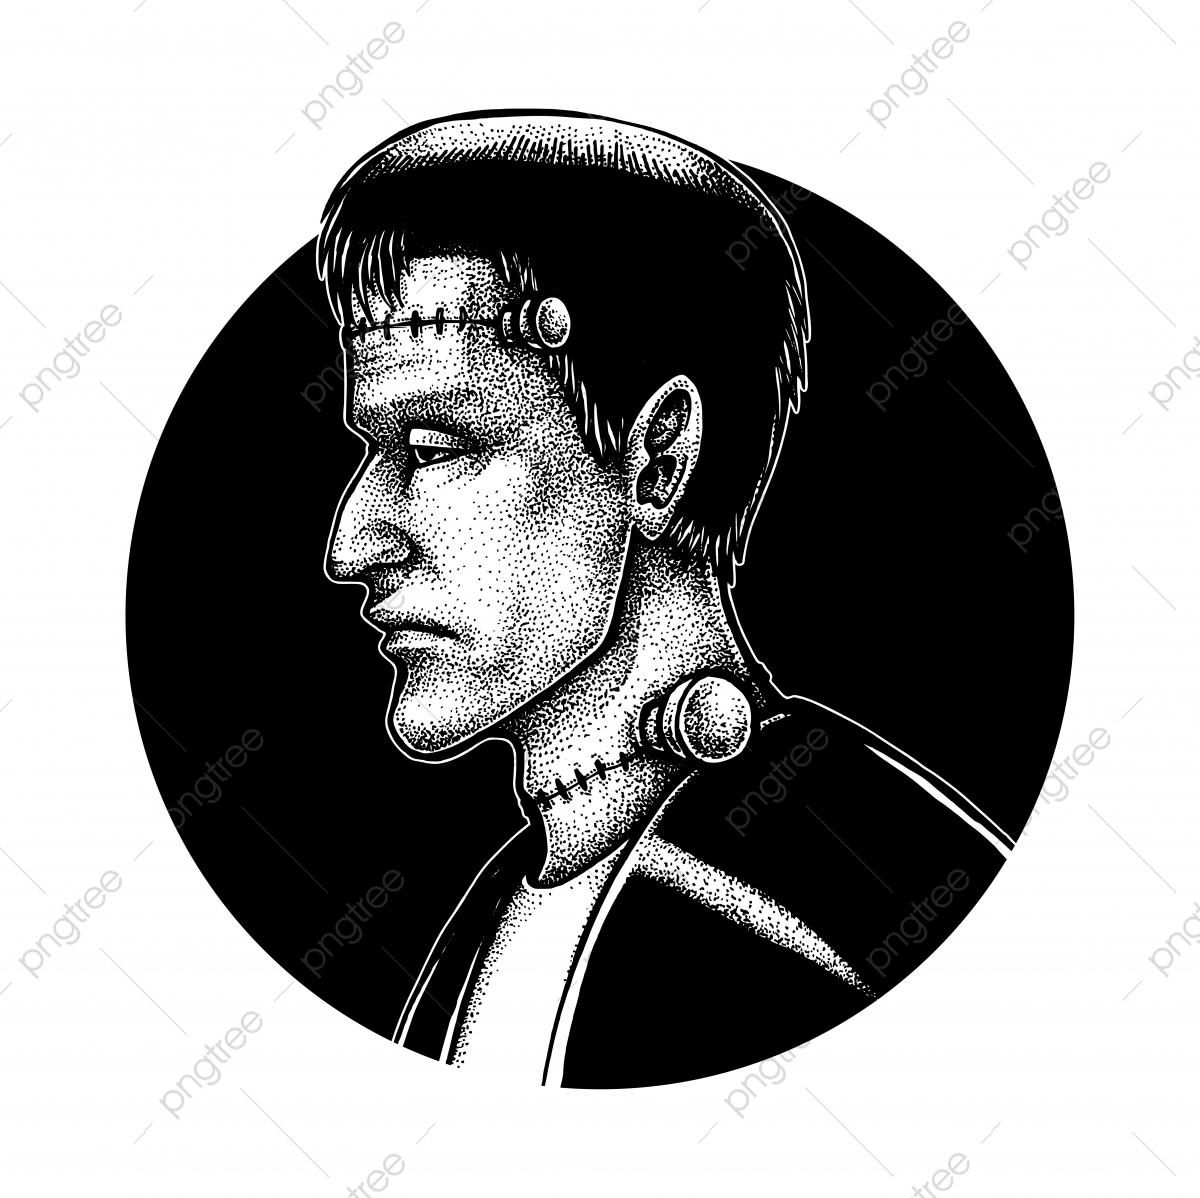 Frankenstein Clipart Black And White https://ift.tt/2Yn0lAA | Clipart black  and white, Clip art, Line art